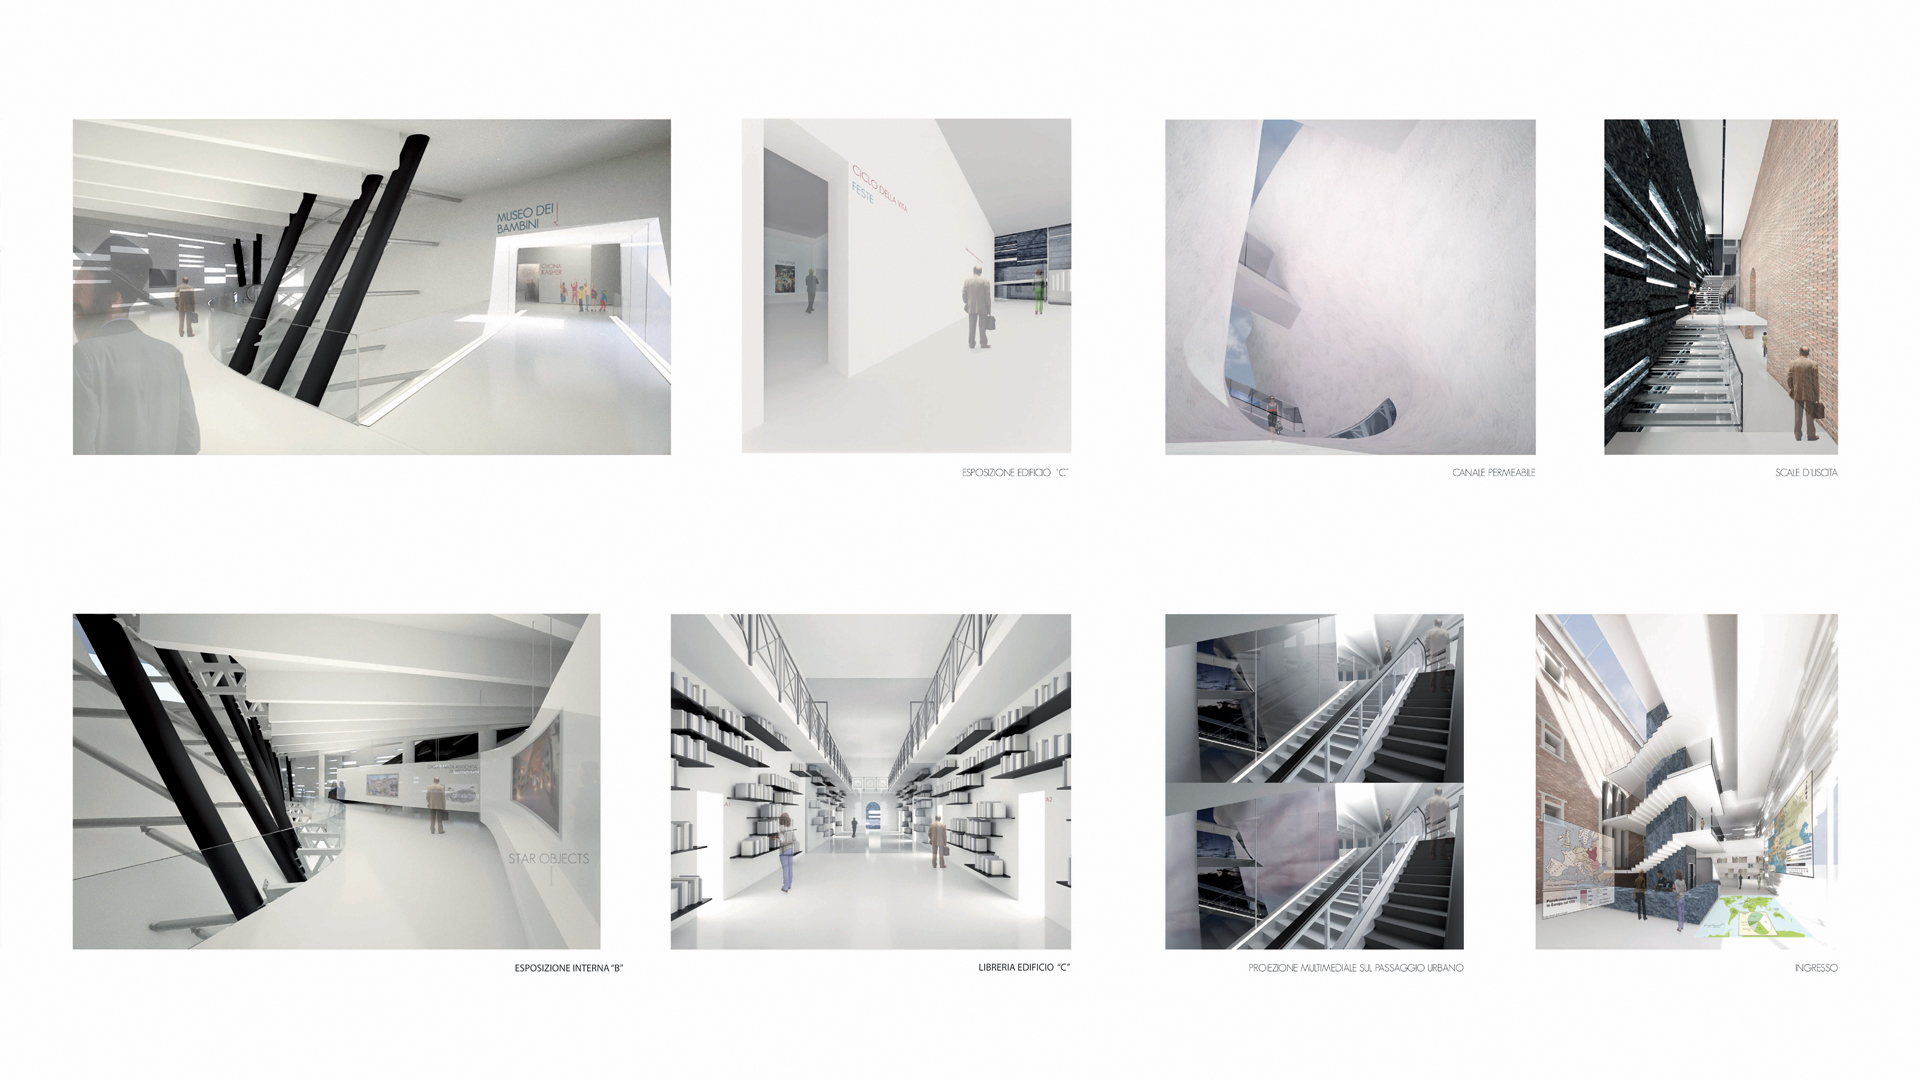 Urban Void Meis Competition Alfonso Architetti